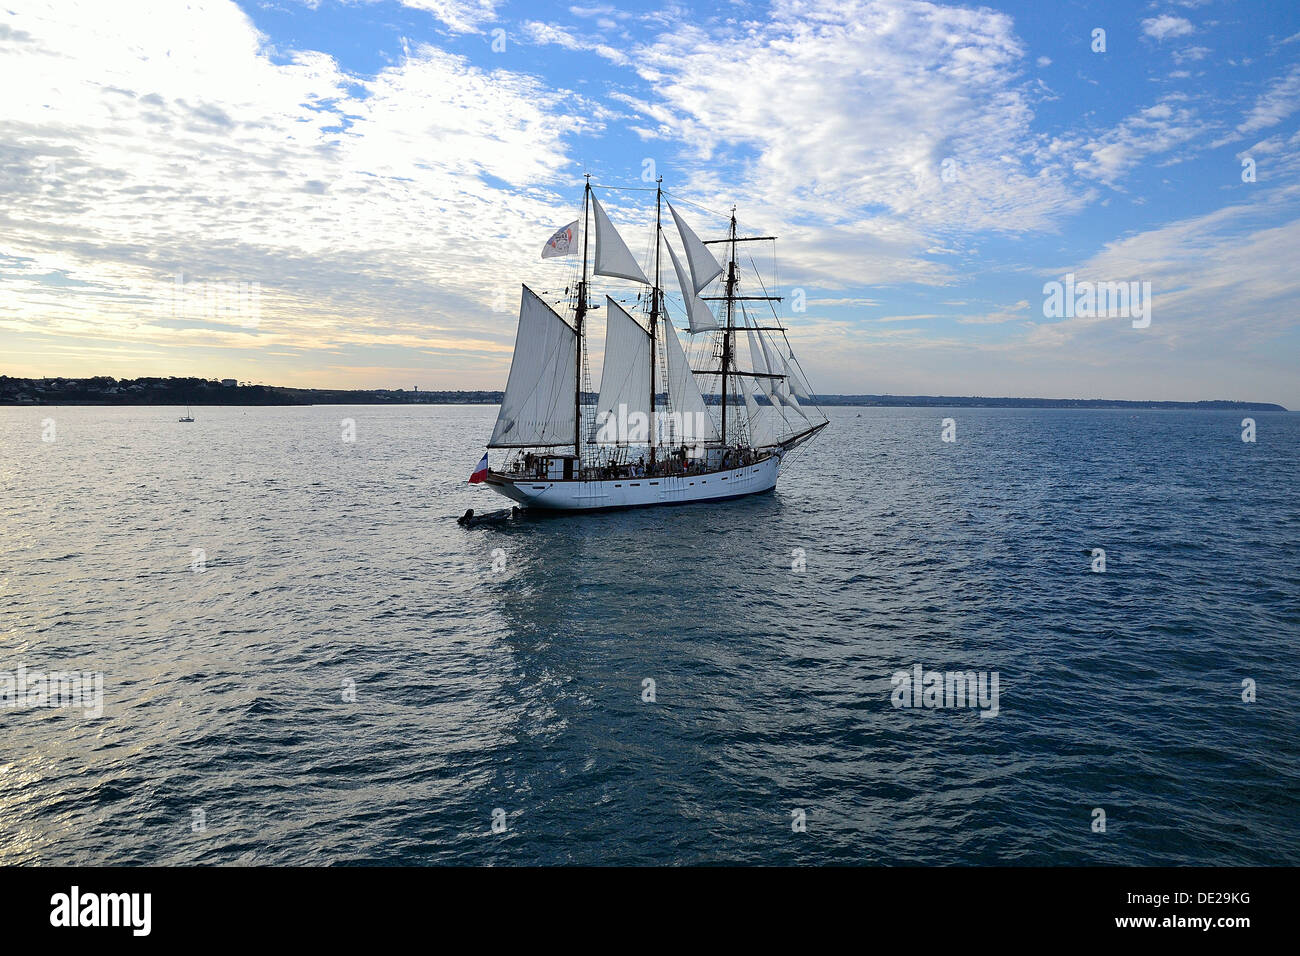 Marité (three-masted schooner, 1921, homeport : Granville), old fishing boat, leaving the fishing port of Granville (Normandy). Stock Photo